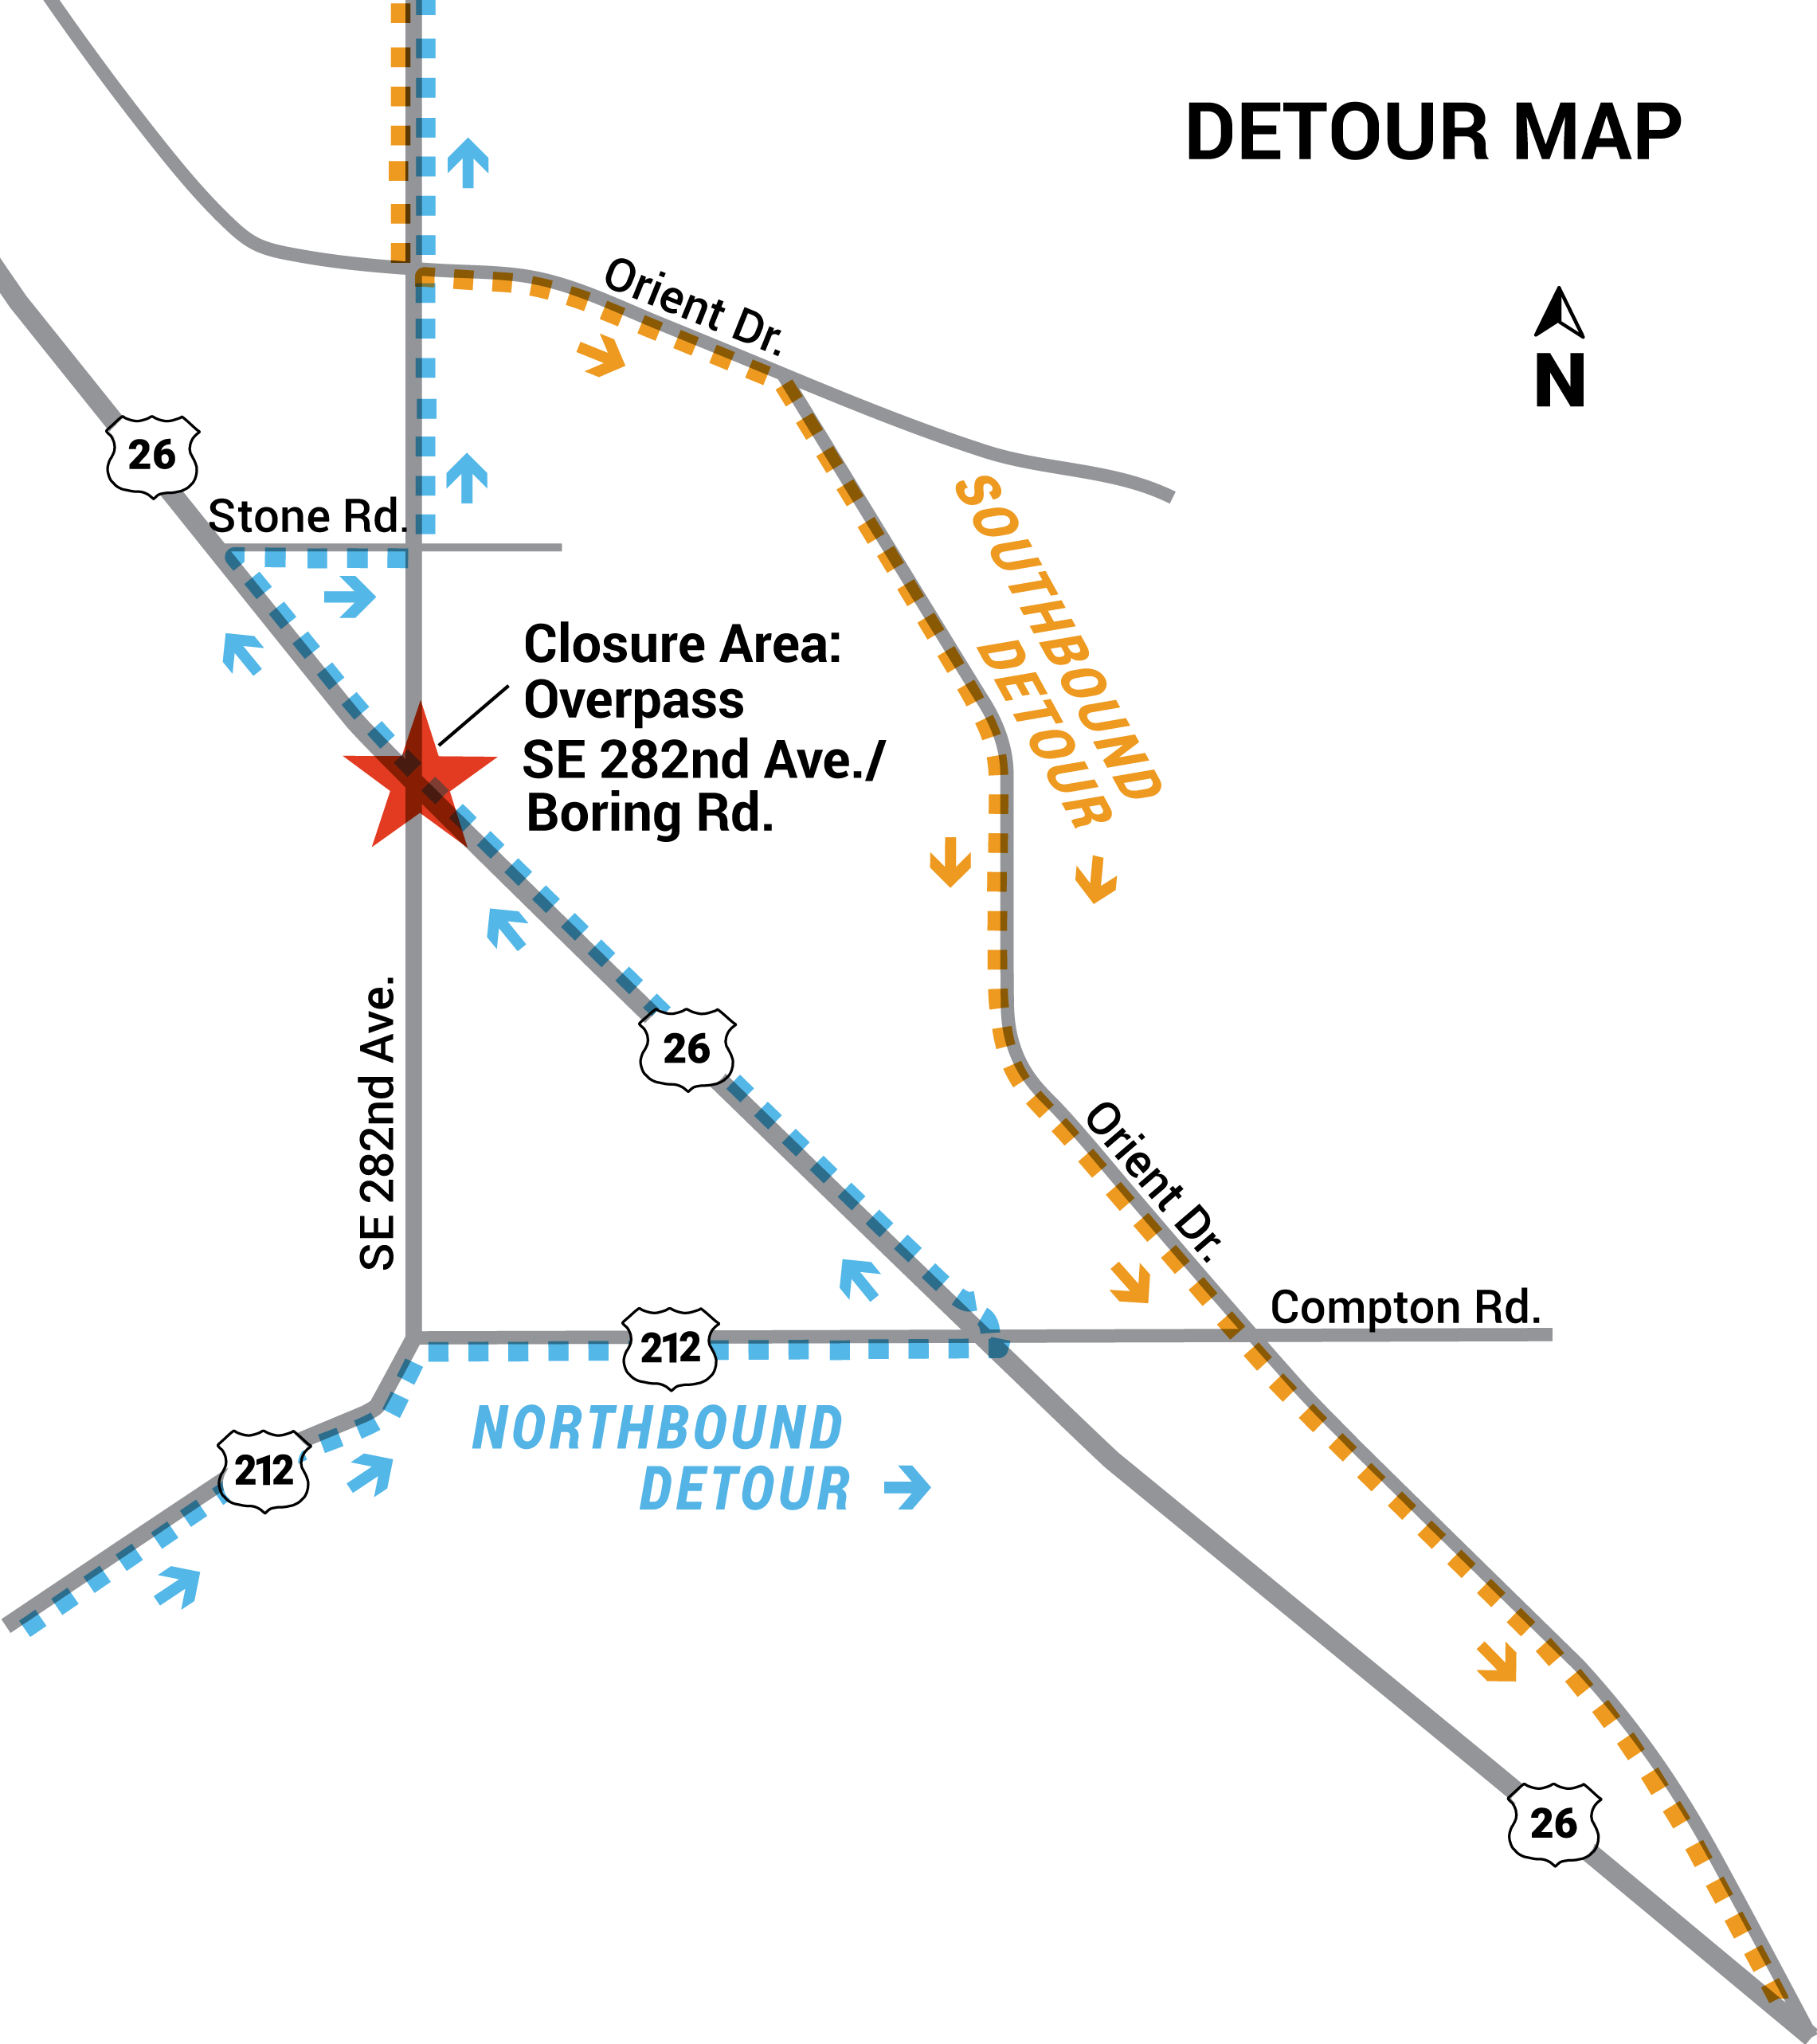 Southbound traffic should use Orient Drive to Compton Road. Northbound traffic should use Compton Road to U.S. 26 and Stone Road